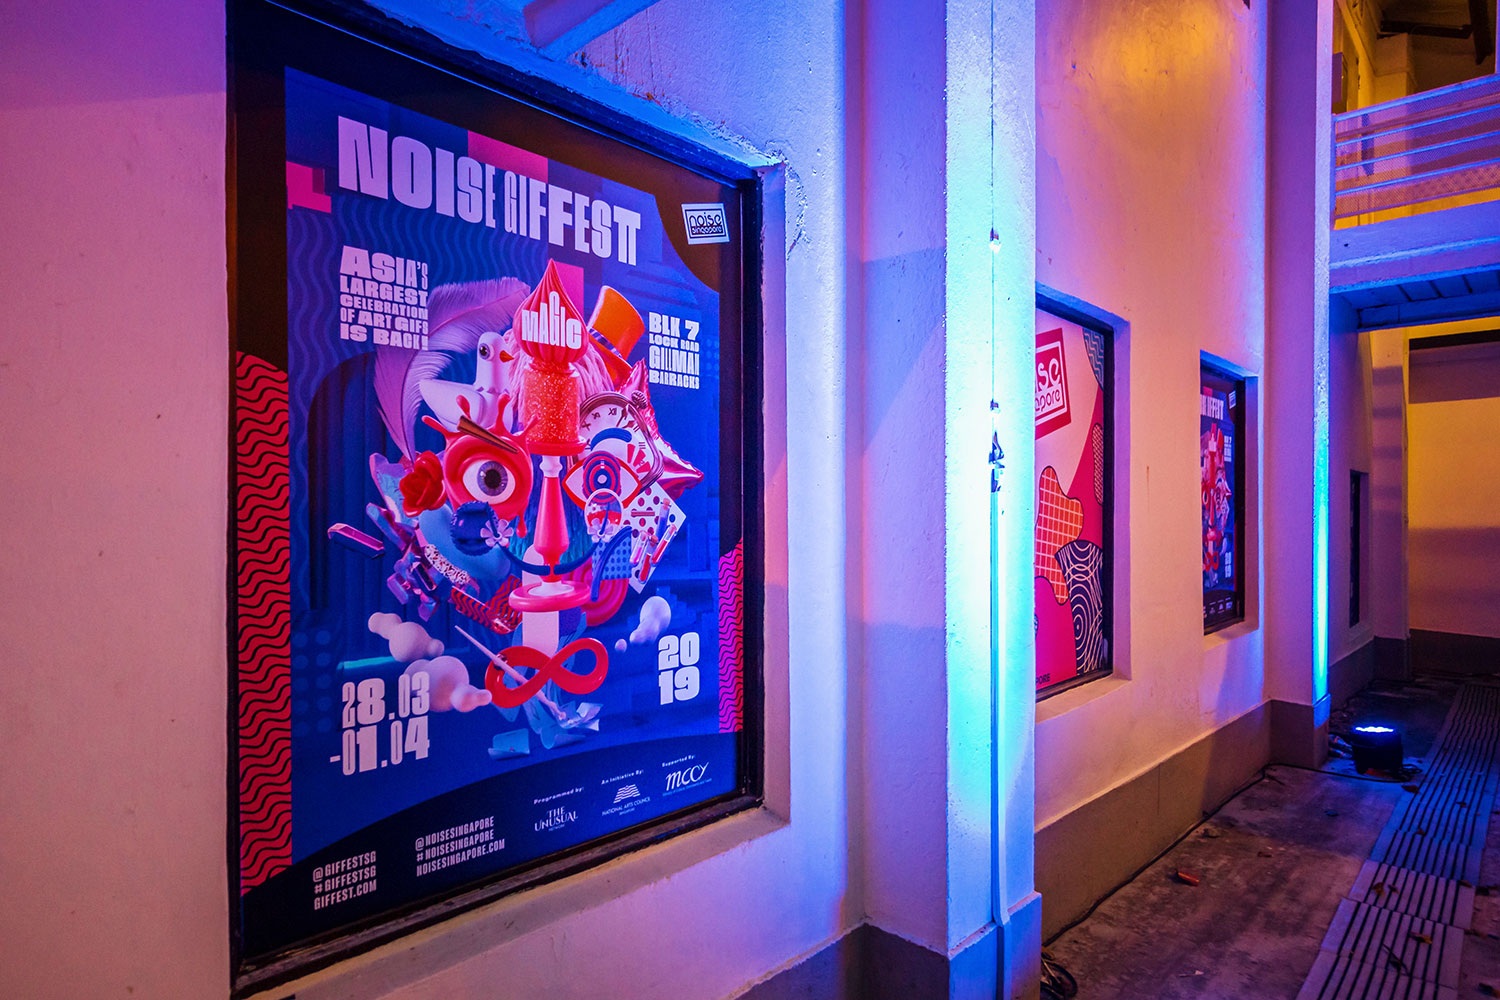 GIF Fest II 2019 festival branding posters on exterior walls at the exhbition at Gillman Barracks, Singapore. Photography by BÜRO UFHO.